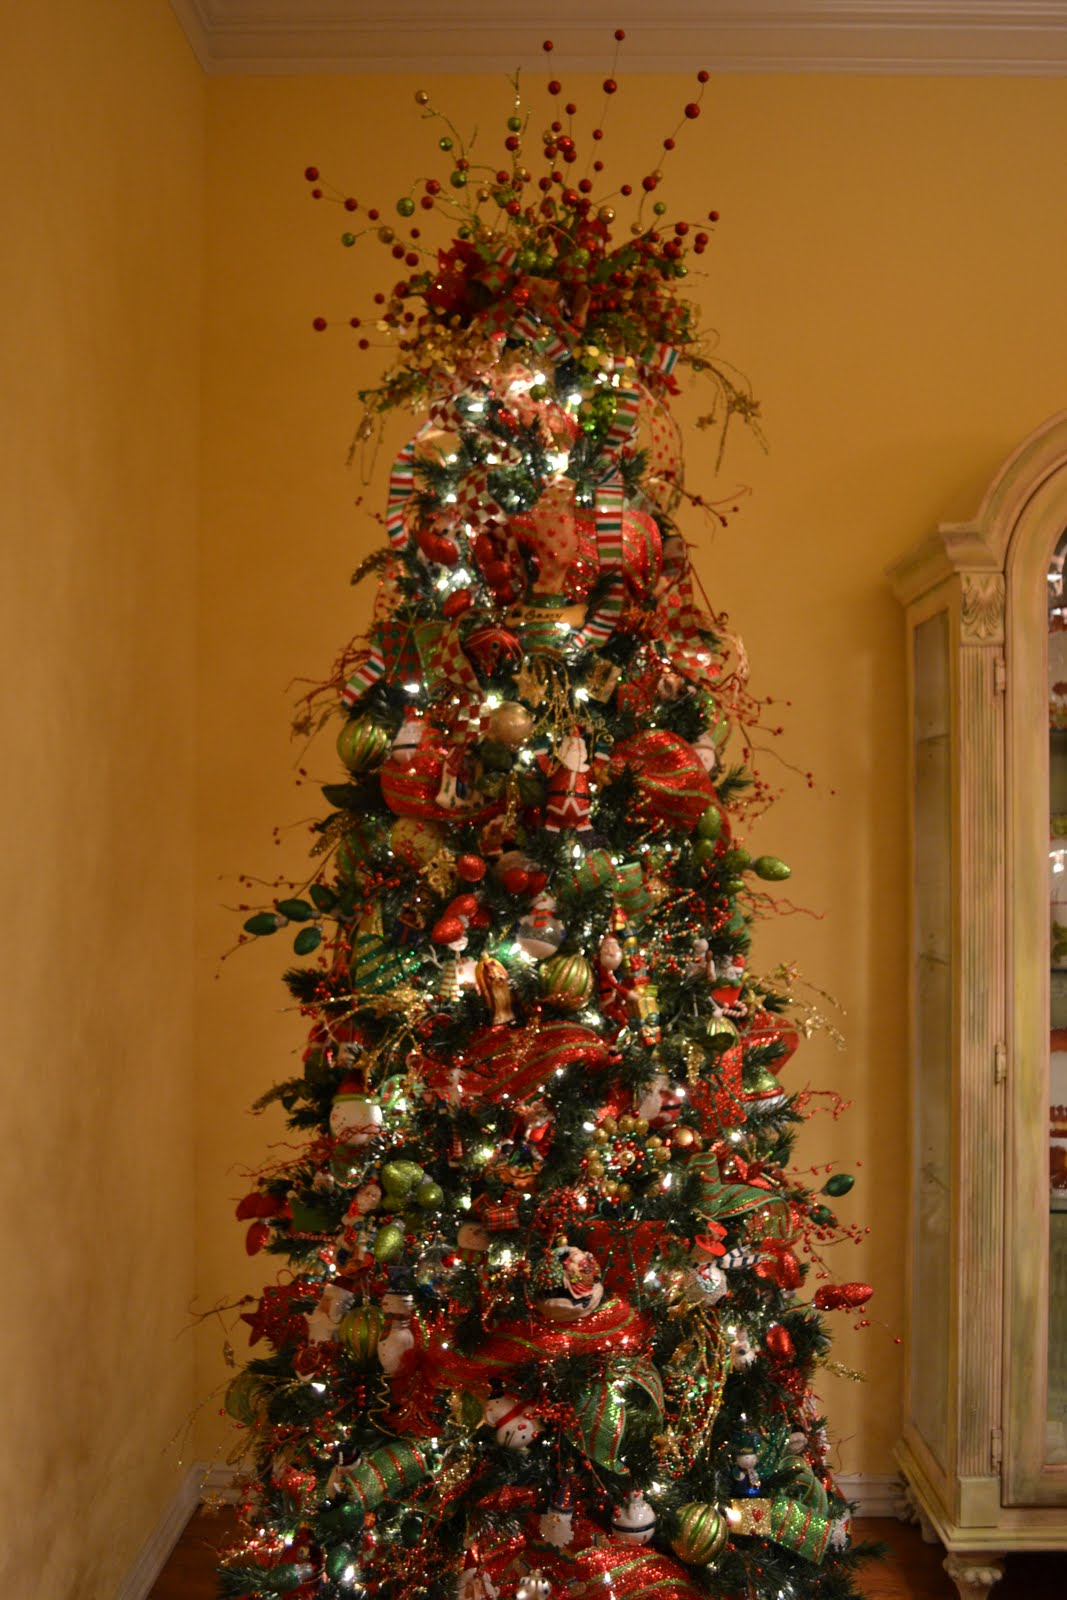 saturday november 26 2011 - Photos Of Christmas Trees Decorated With Ribbon